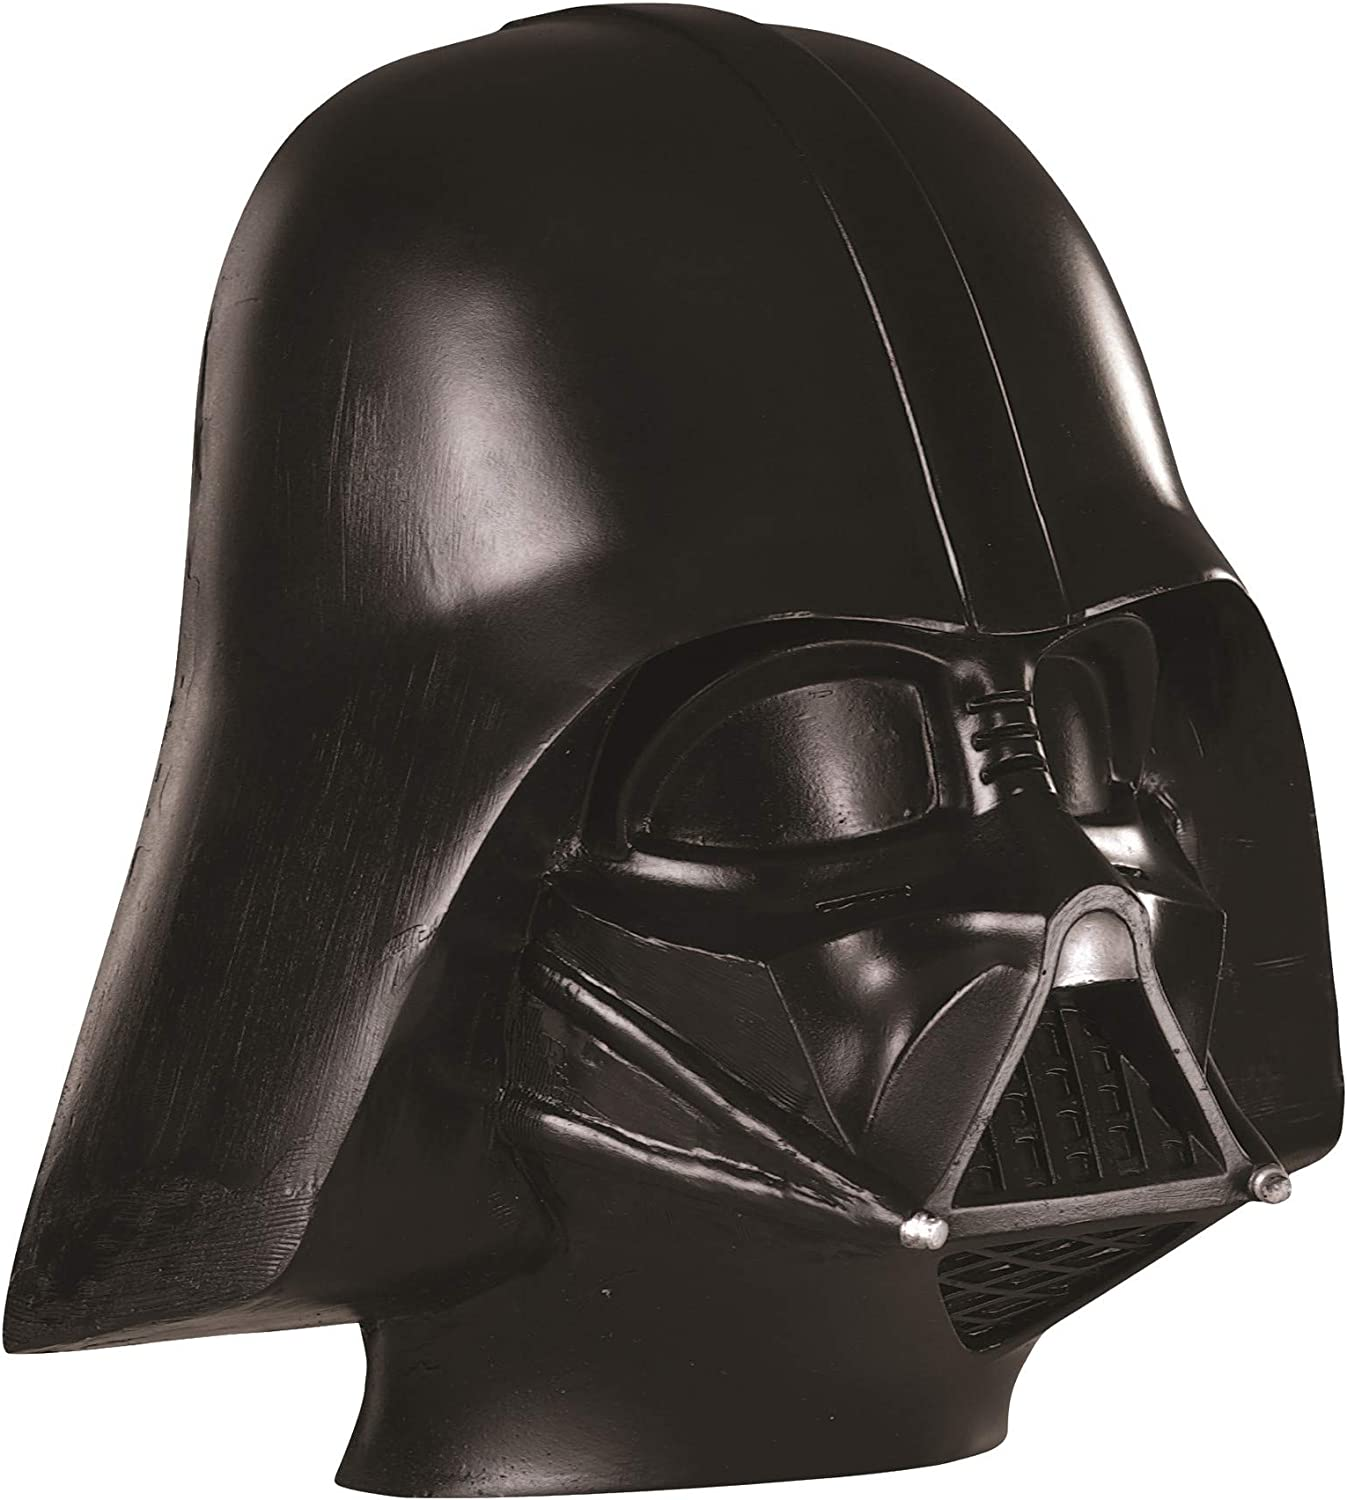 Star Wars DARTH VADER Anakin Skywalker Helmet Cosplay Mask Halloween Helmet